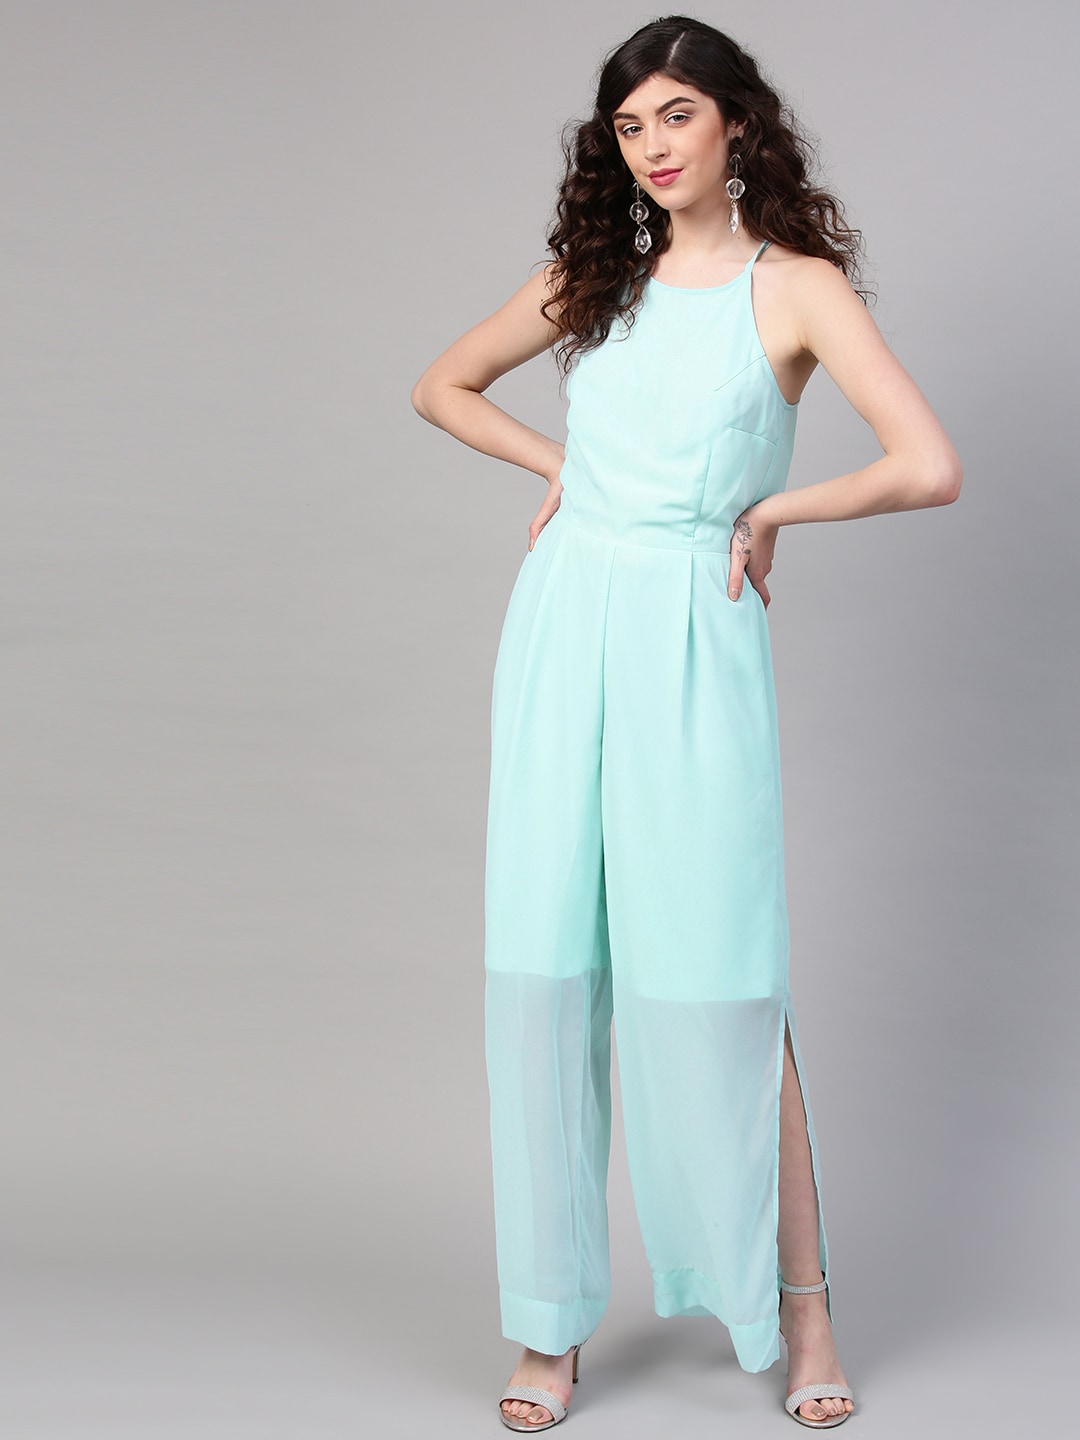 b8018c9f1597 Jumpsuits - Buy Jumpsuits For Women